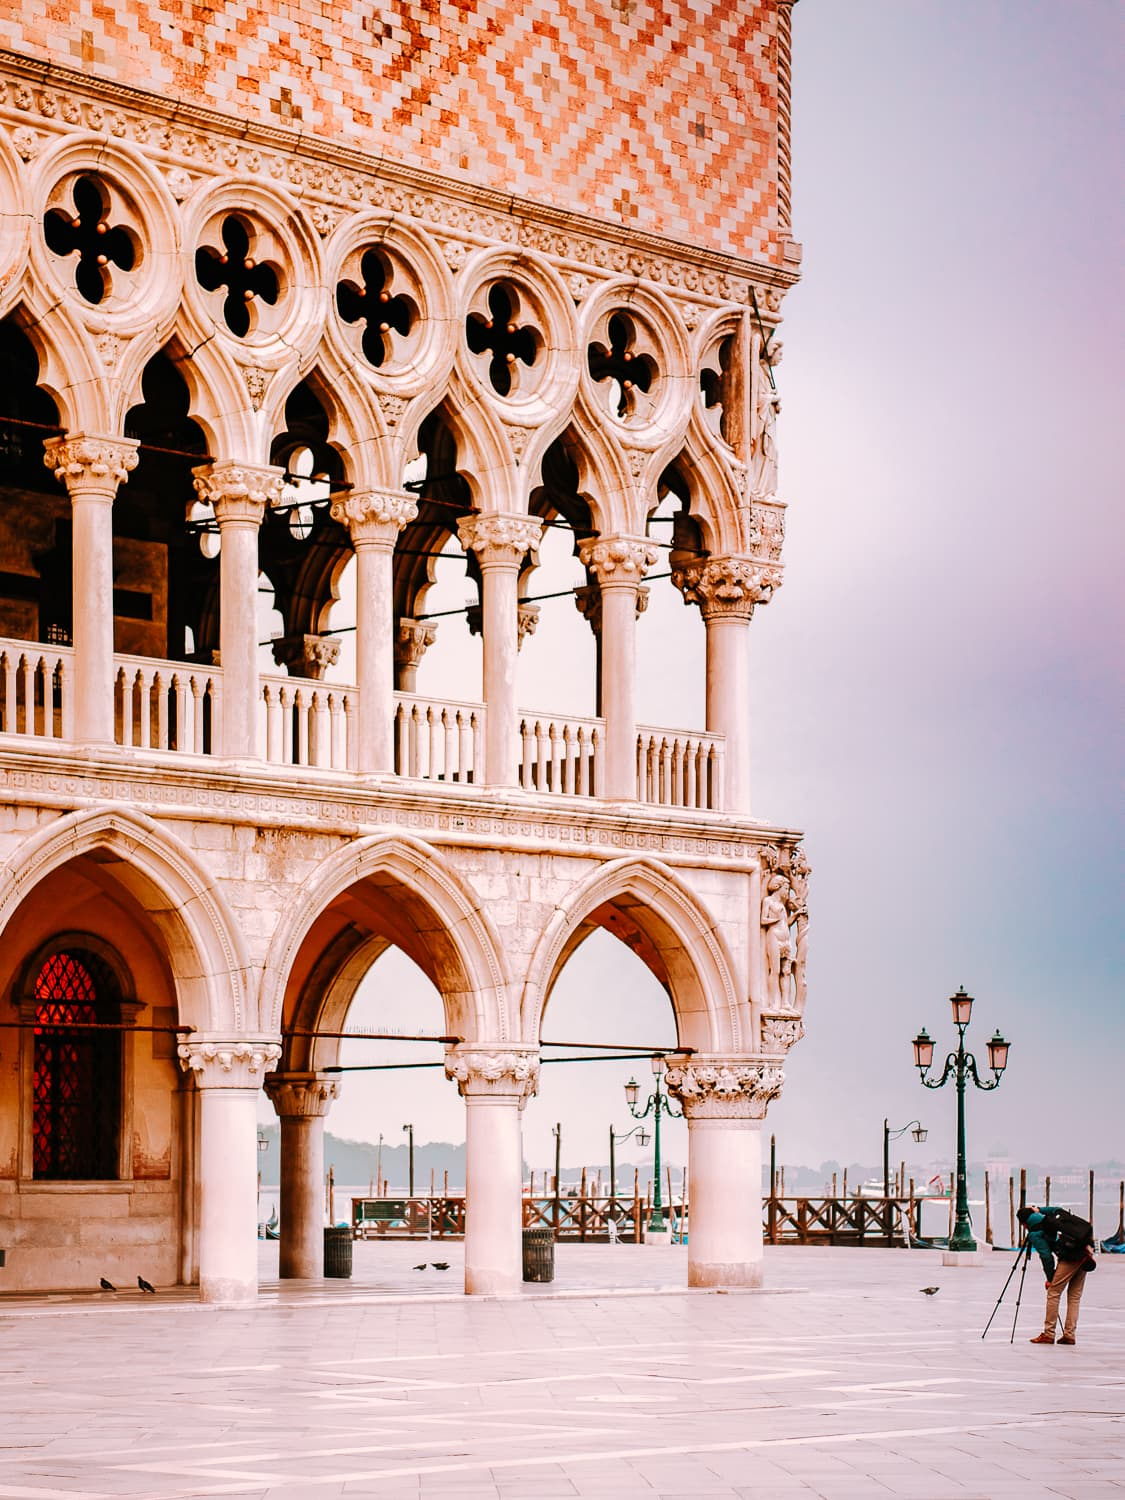 The Doge's Palace near Piazza San Marco in Venice.